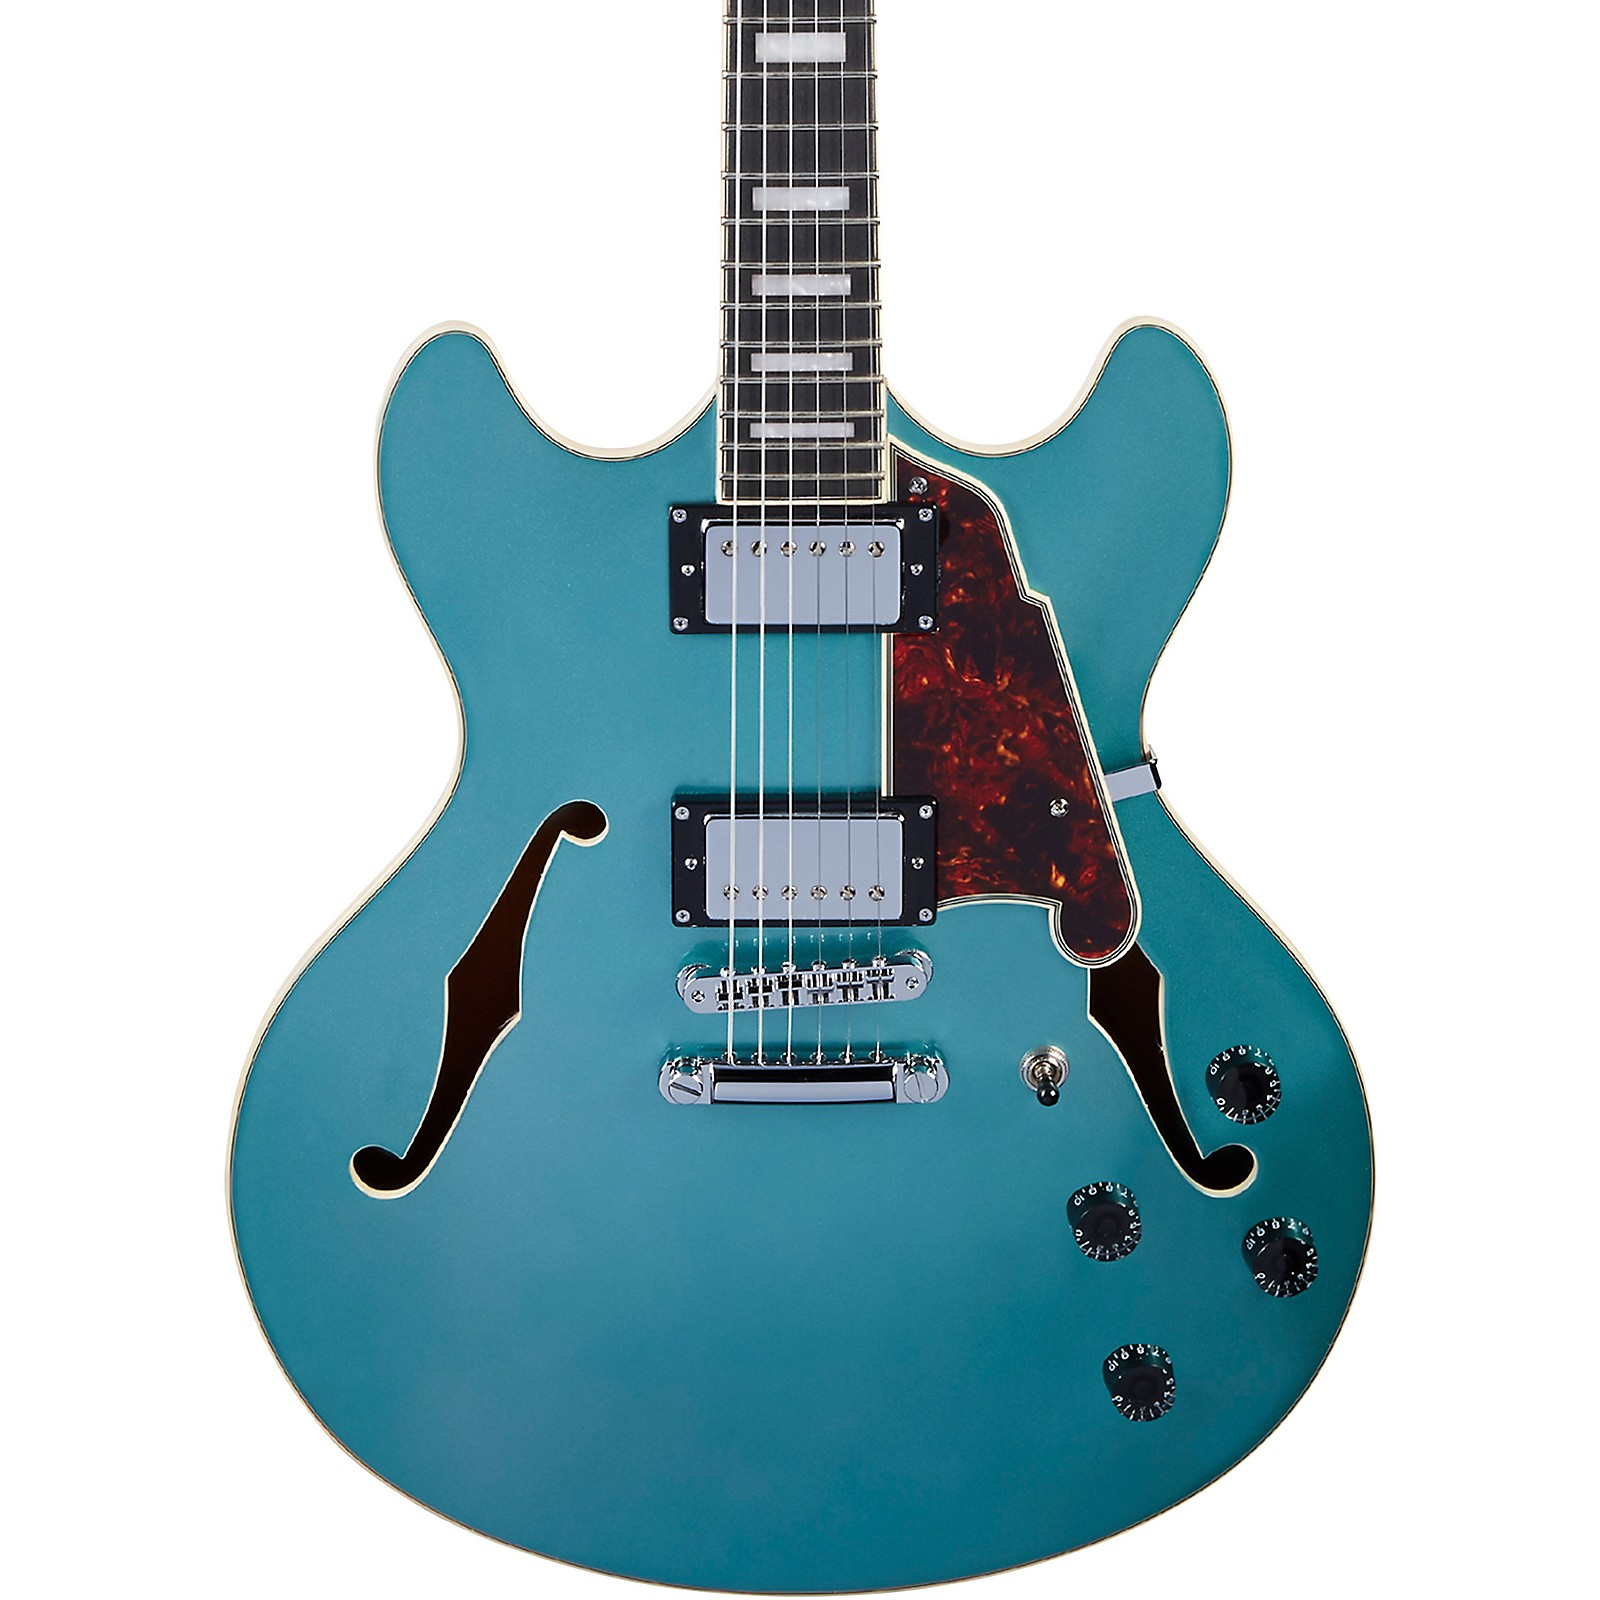 D'Angelico Premier DC Semi-Hollow Electric Guitar with Stopbar Tailpiece